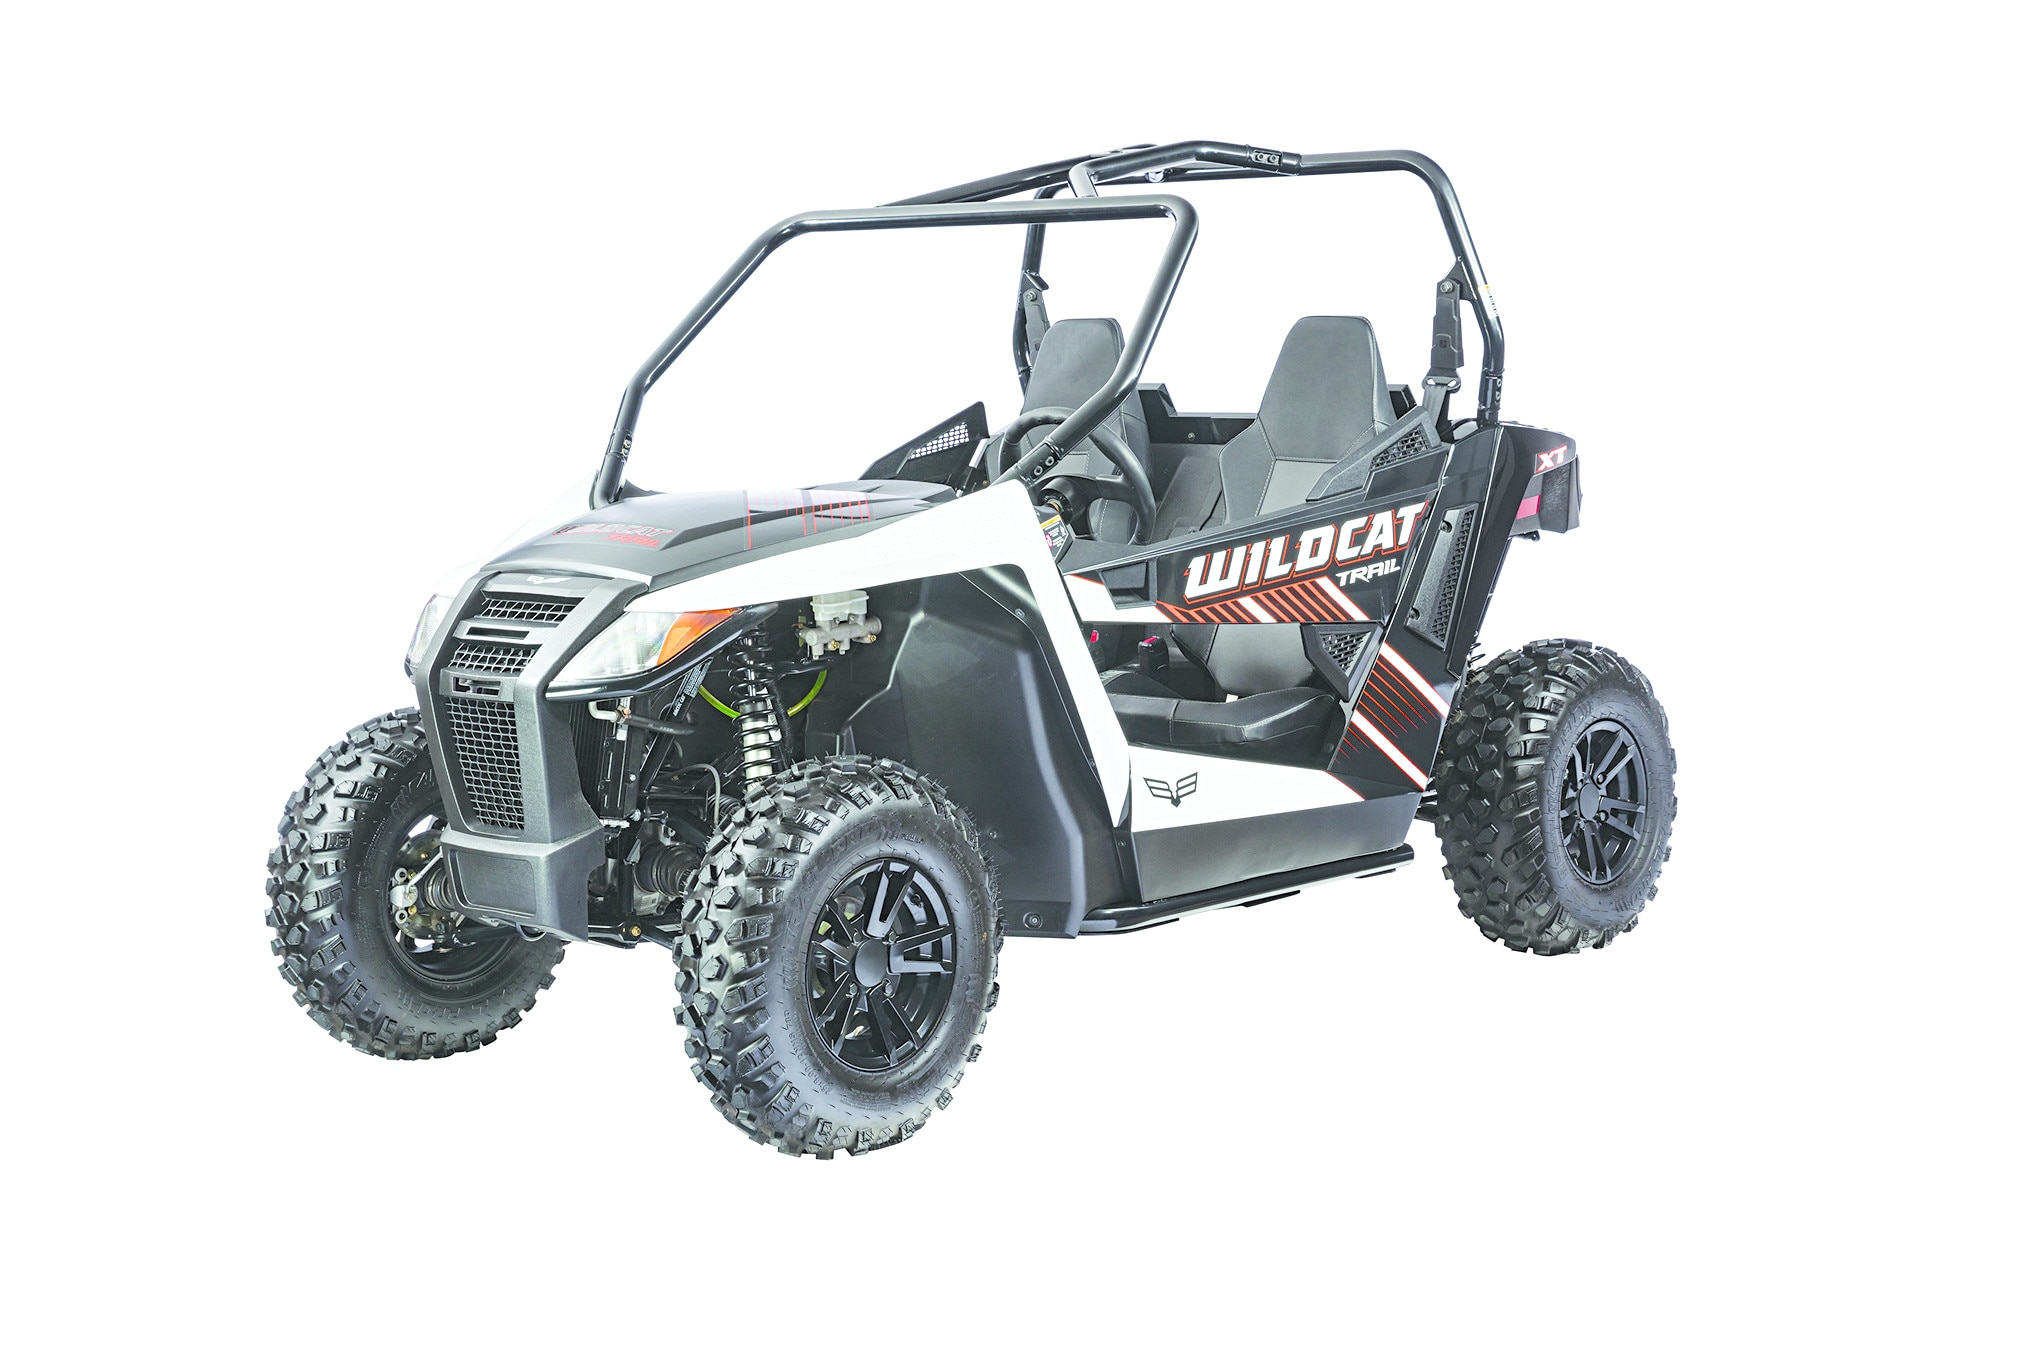 051 utv guide textron trail xt eps front three quarter